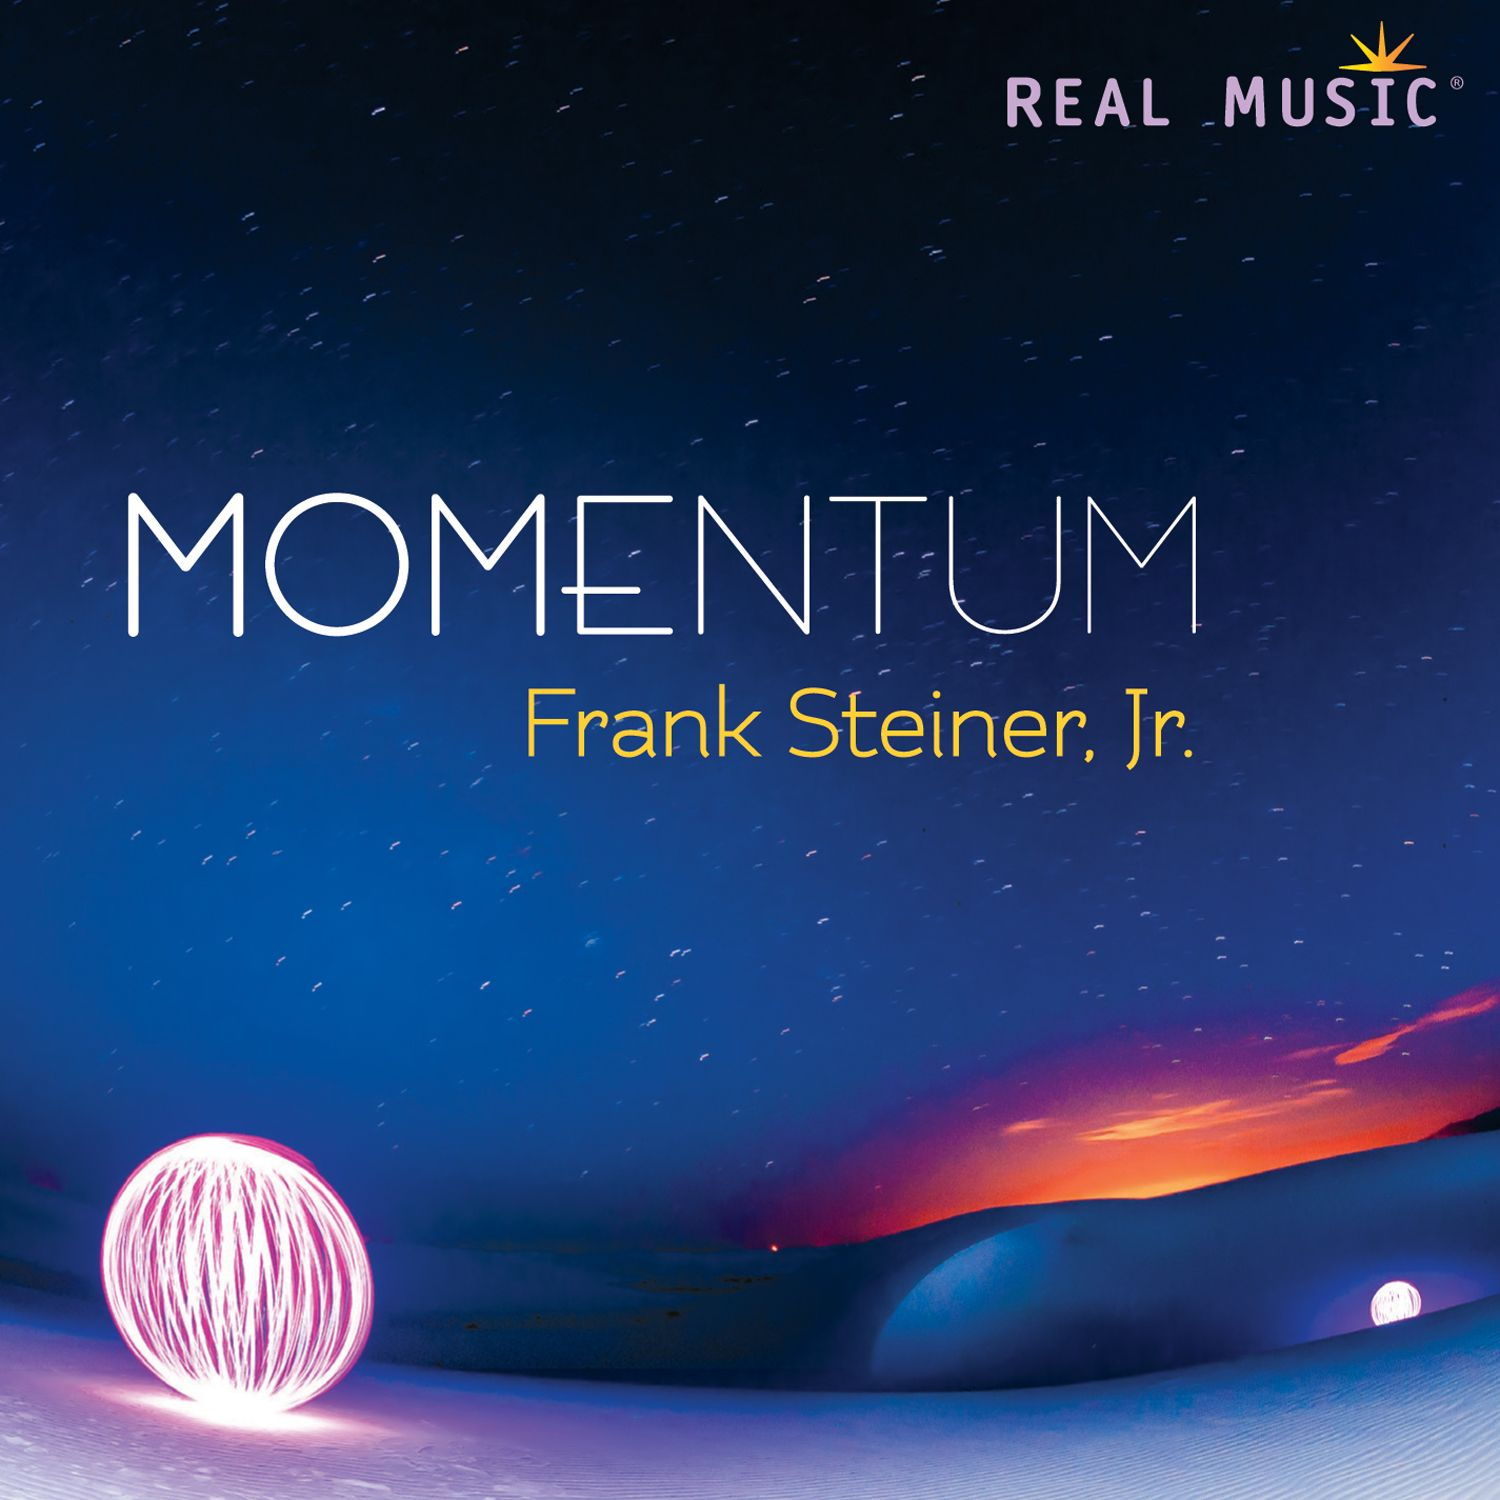 Exotically shamanic, softly jazzy, rhythmically expressive — all given voice by this master of global musical genres. With some pieces solo piano, some lightly orchestrated, others gently tribal with accompanying world percussion, Steiner has created a work capturing the power of movement.   www.realmusic.com